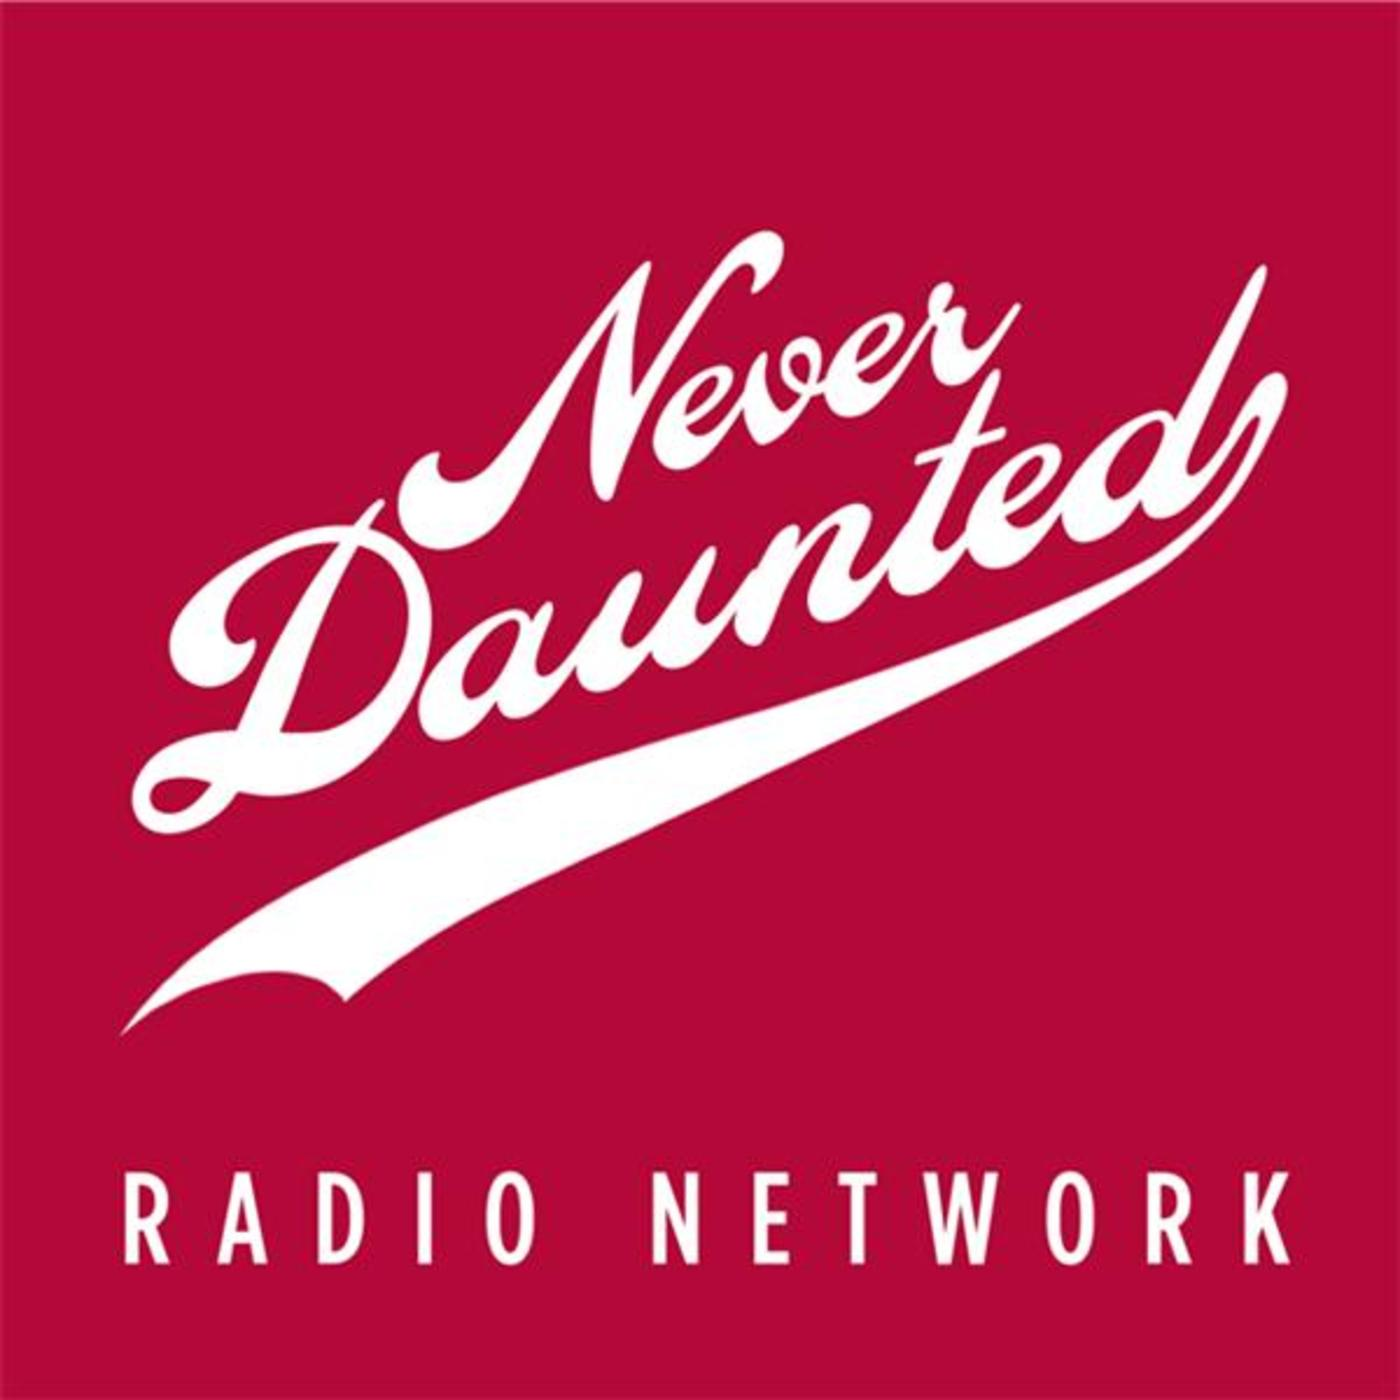 Never Daunted Radio Network